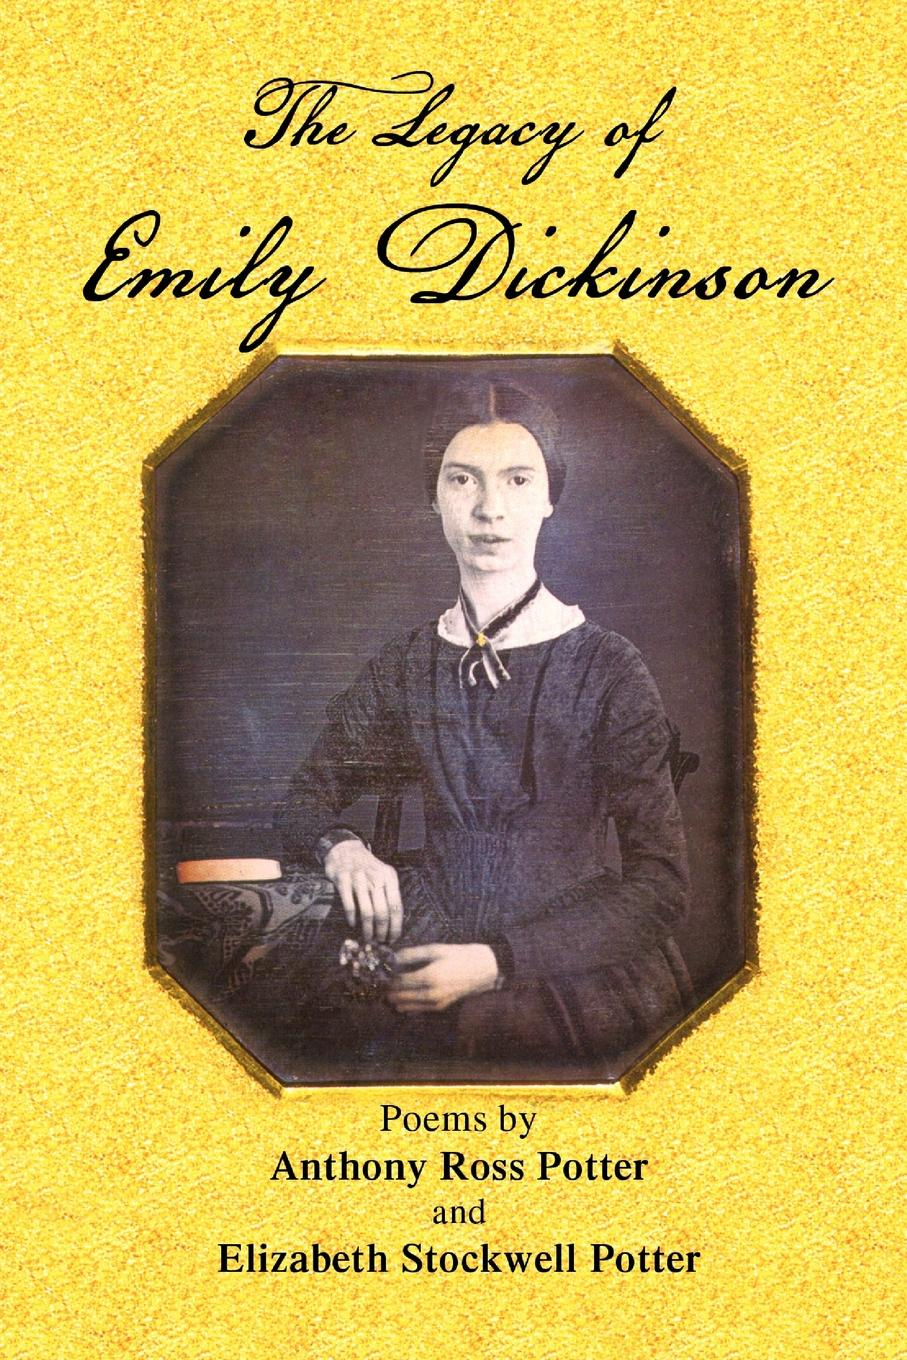 Anthony Ross Potter The Legacy of Emily Dickinson